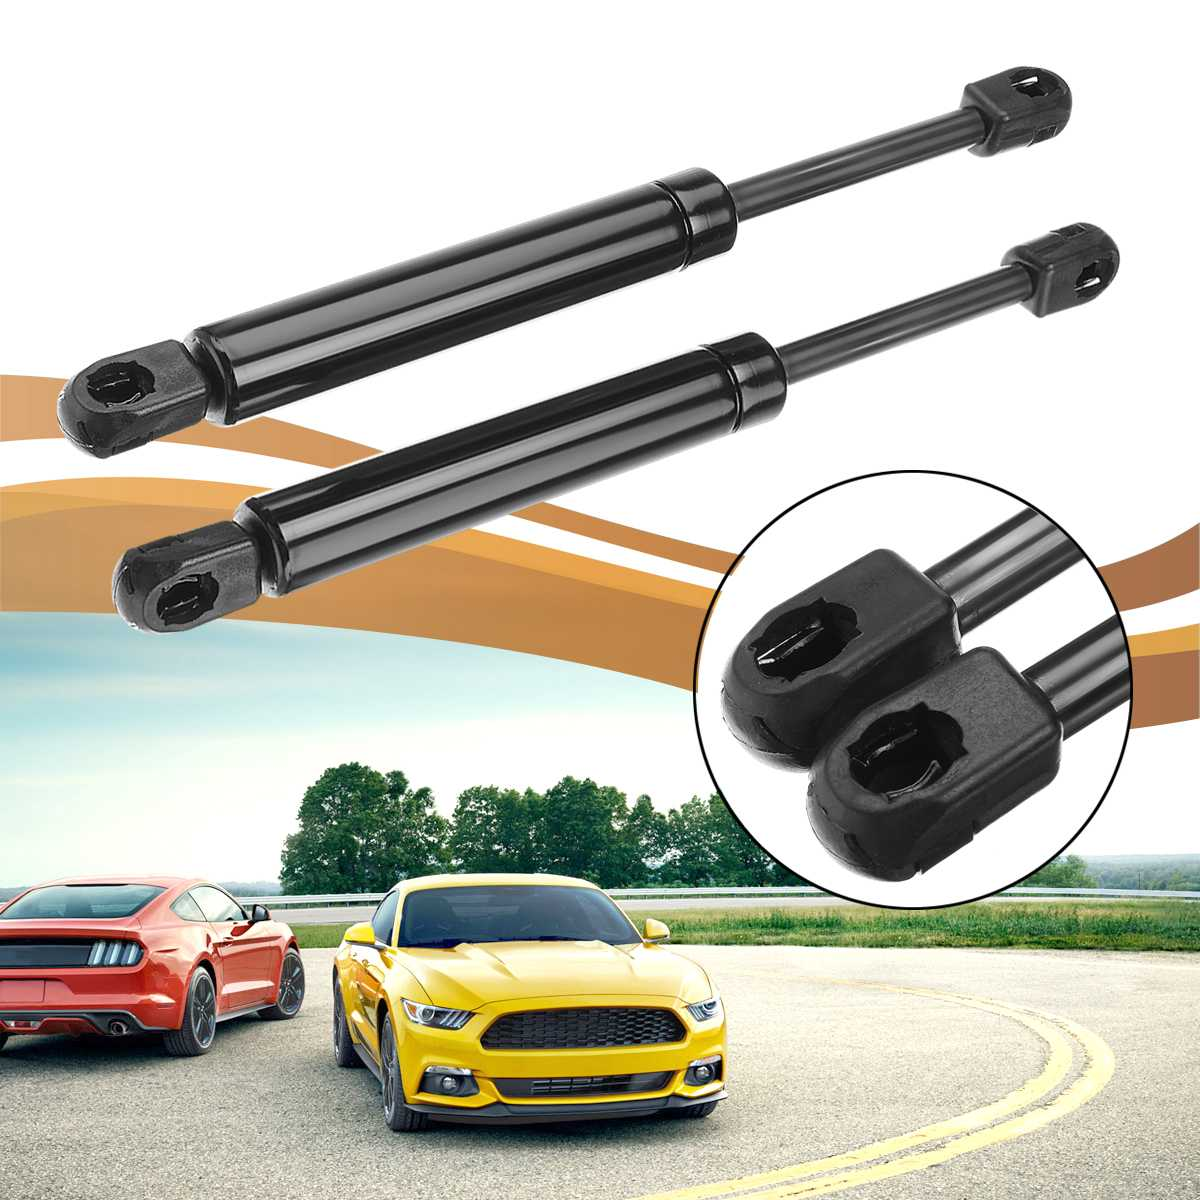 2Pcs Car Styling Auto Front Bonnet Hood Gas Springs Boot Struts Shock Lifters Support For Ford For Mondeo MK3 2000 - 2007